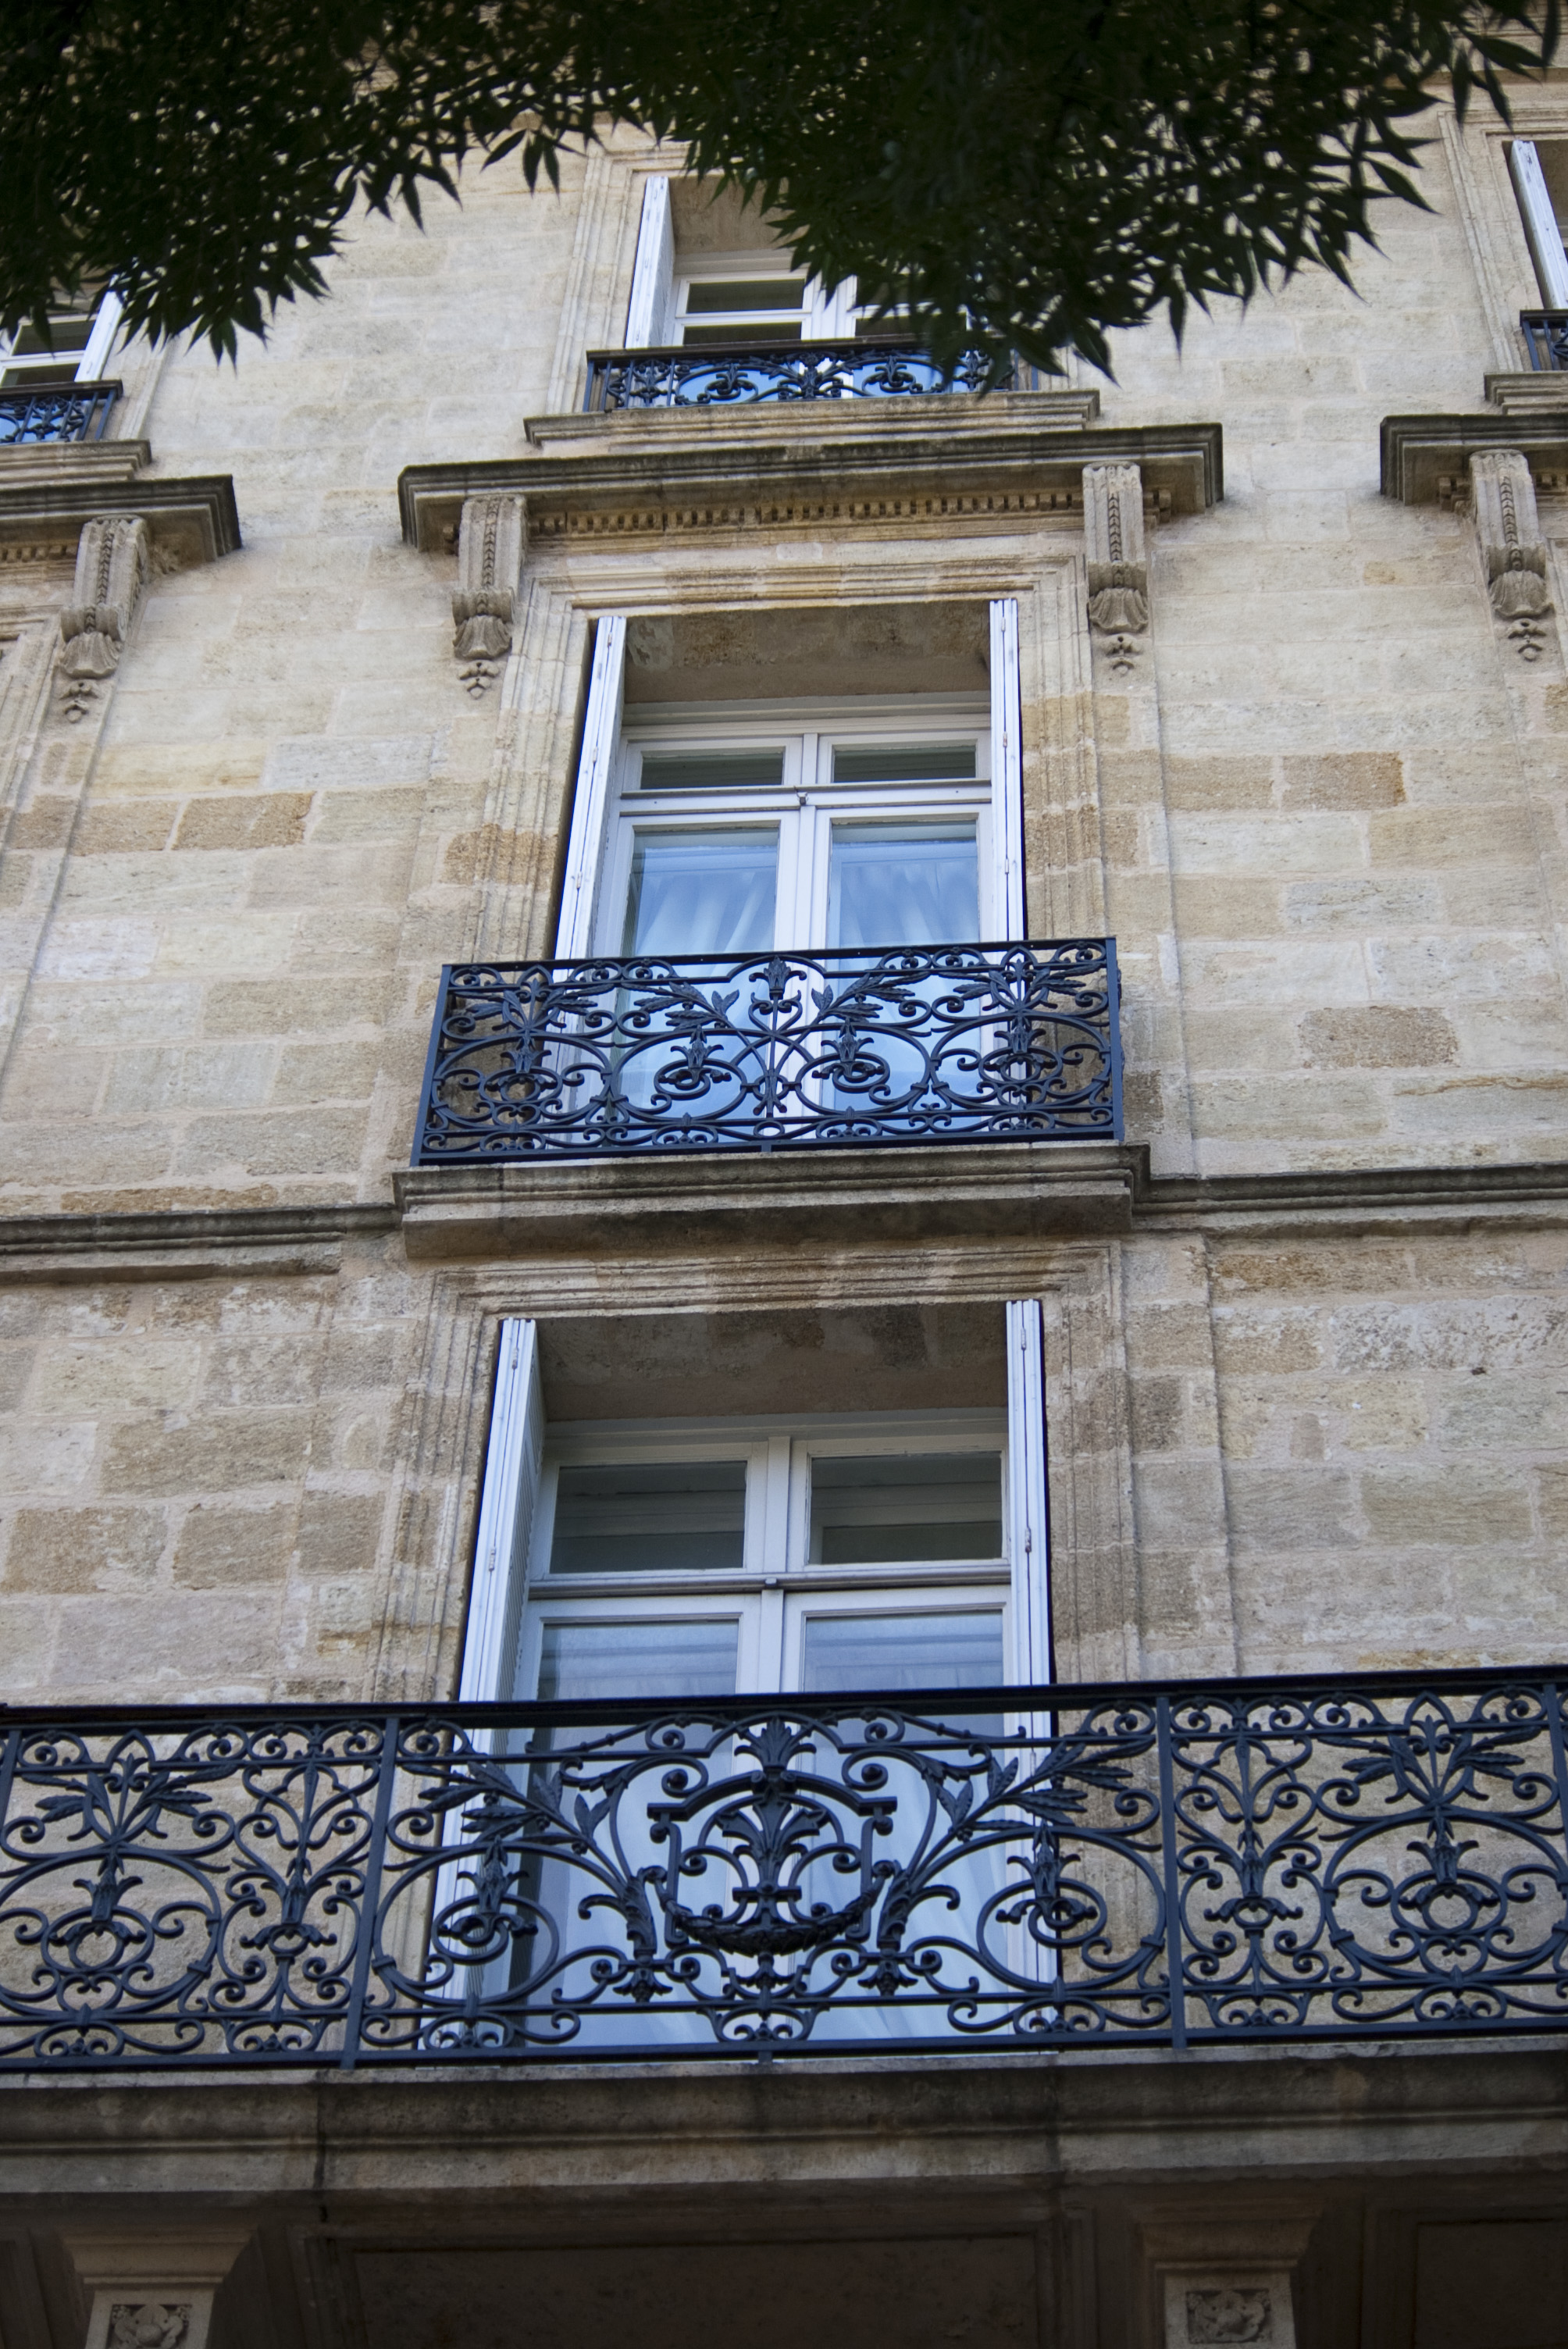 Free stock photo 2776 french windows freeimageslive for Balcony french